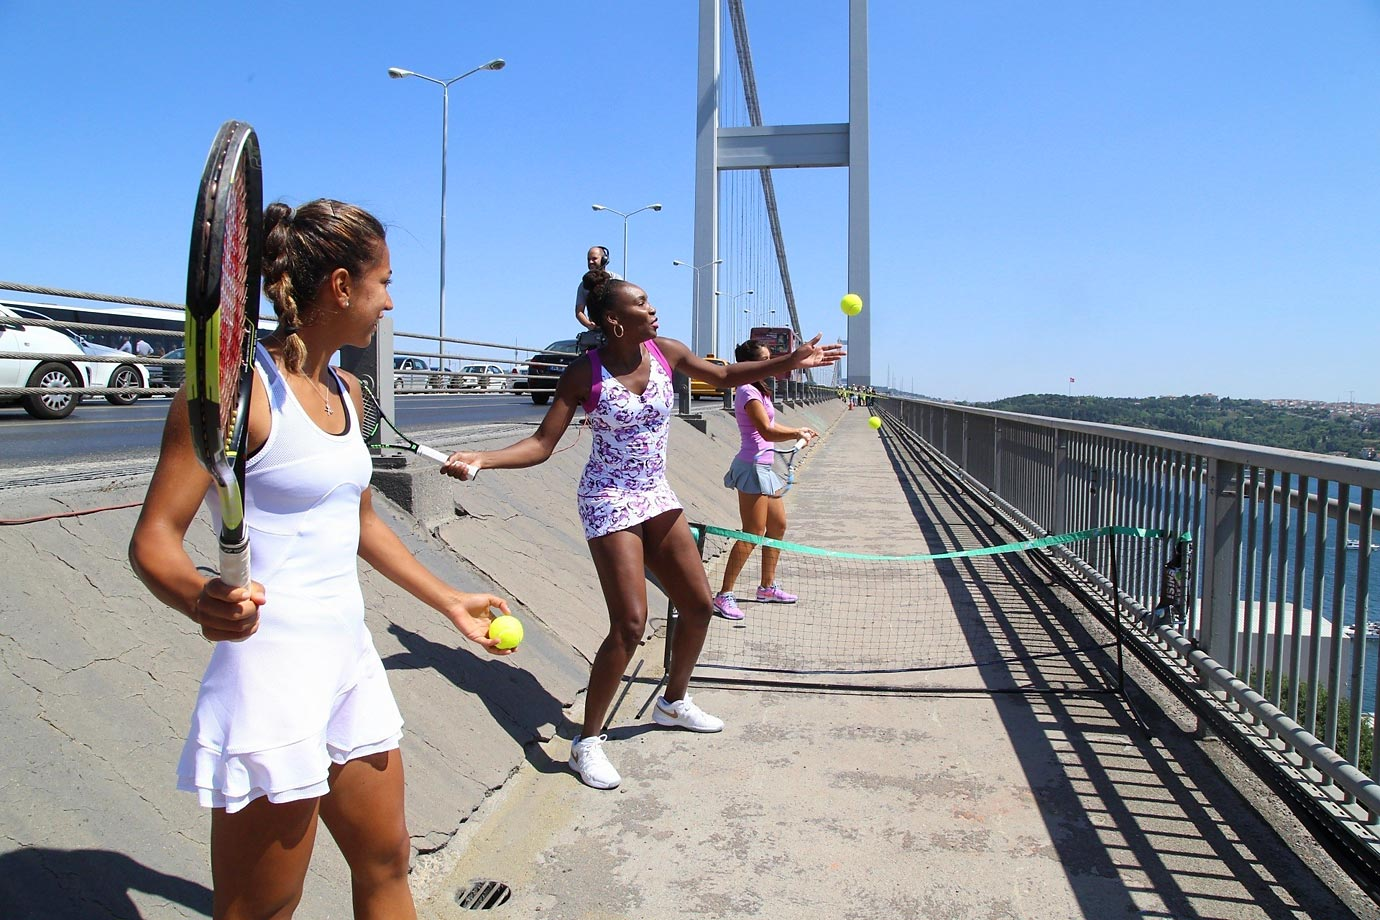 Venus Williams, Ipek Soylu (right) and Cagla Buyukakcay (left) on the Bosphorus Bridge in Istanbul, Turkey, while in town for the TEB BNP Paribas Istanbul Cup tournament.